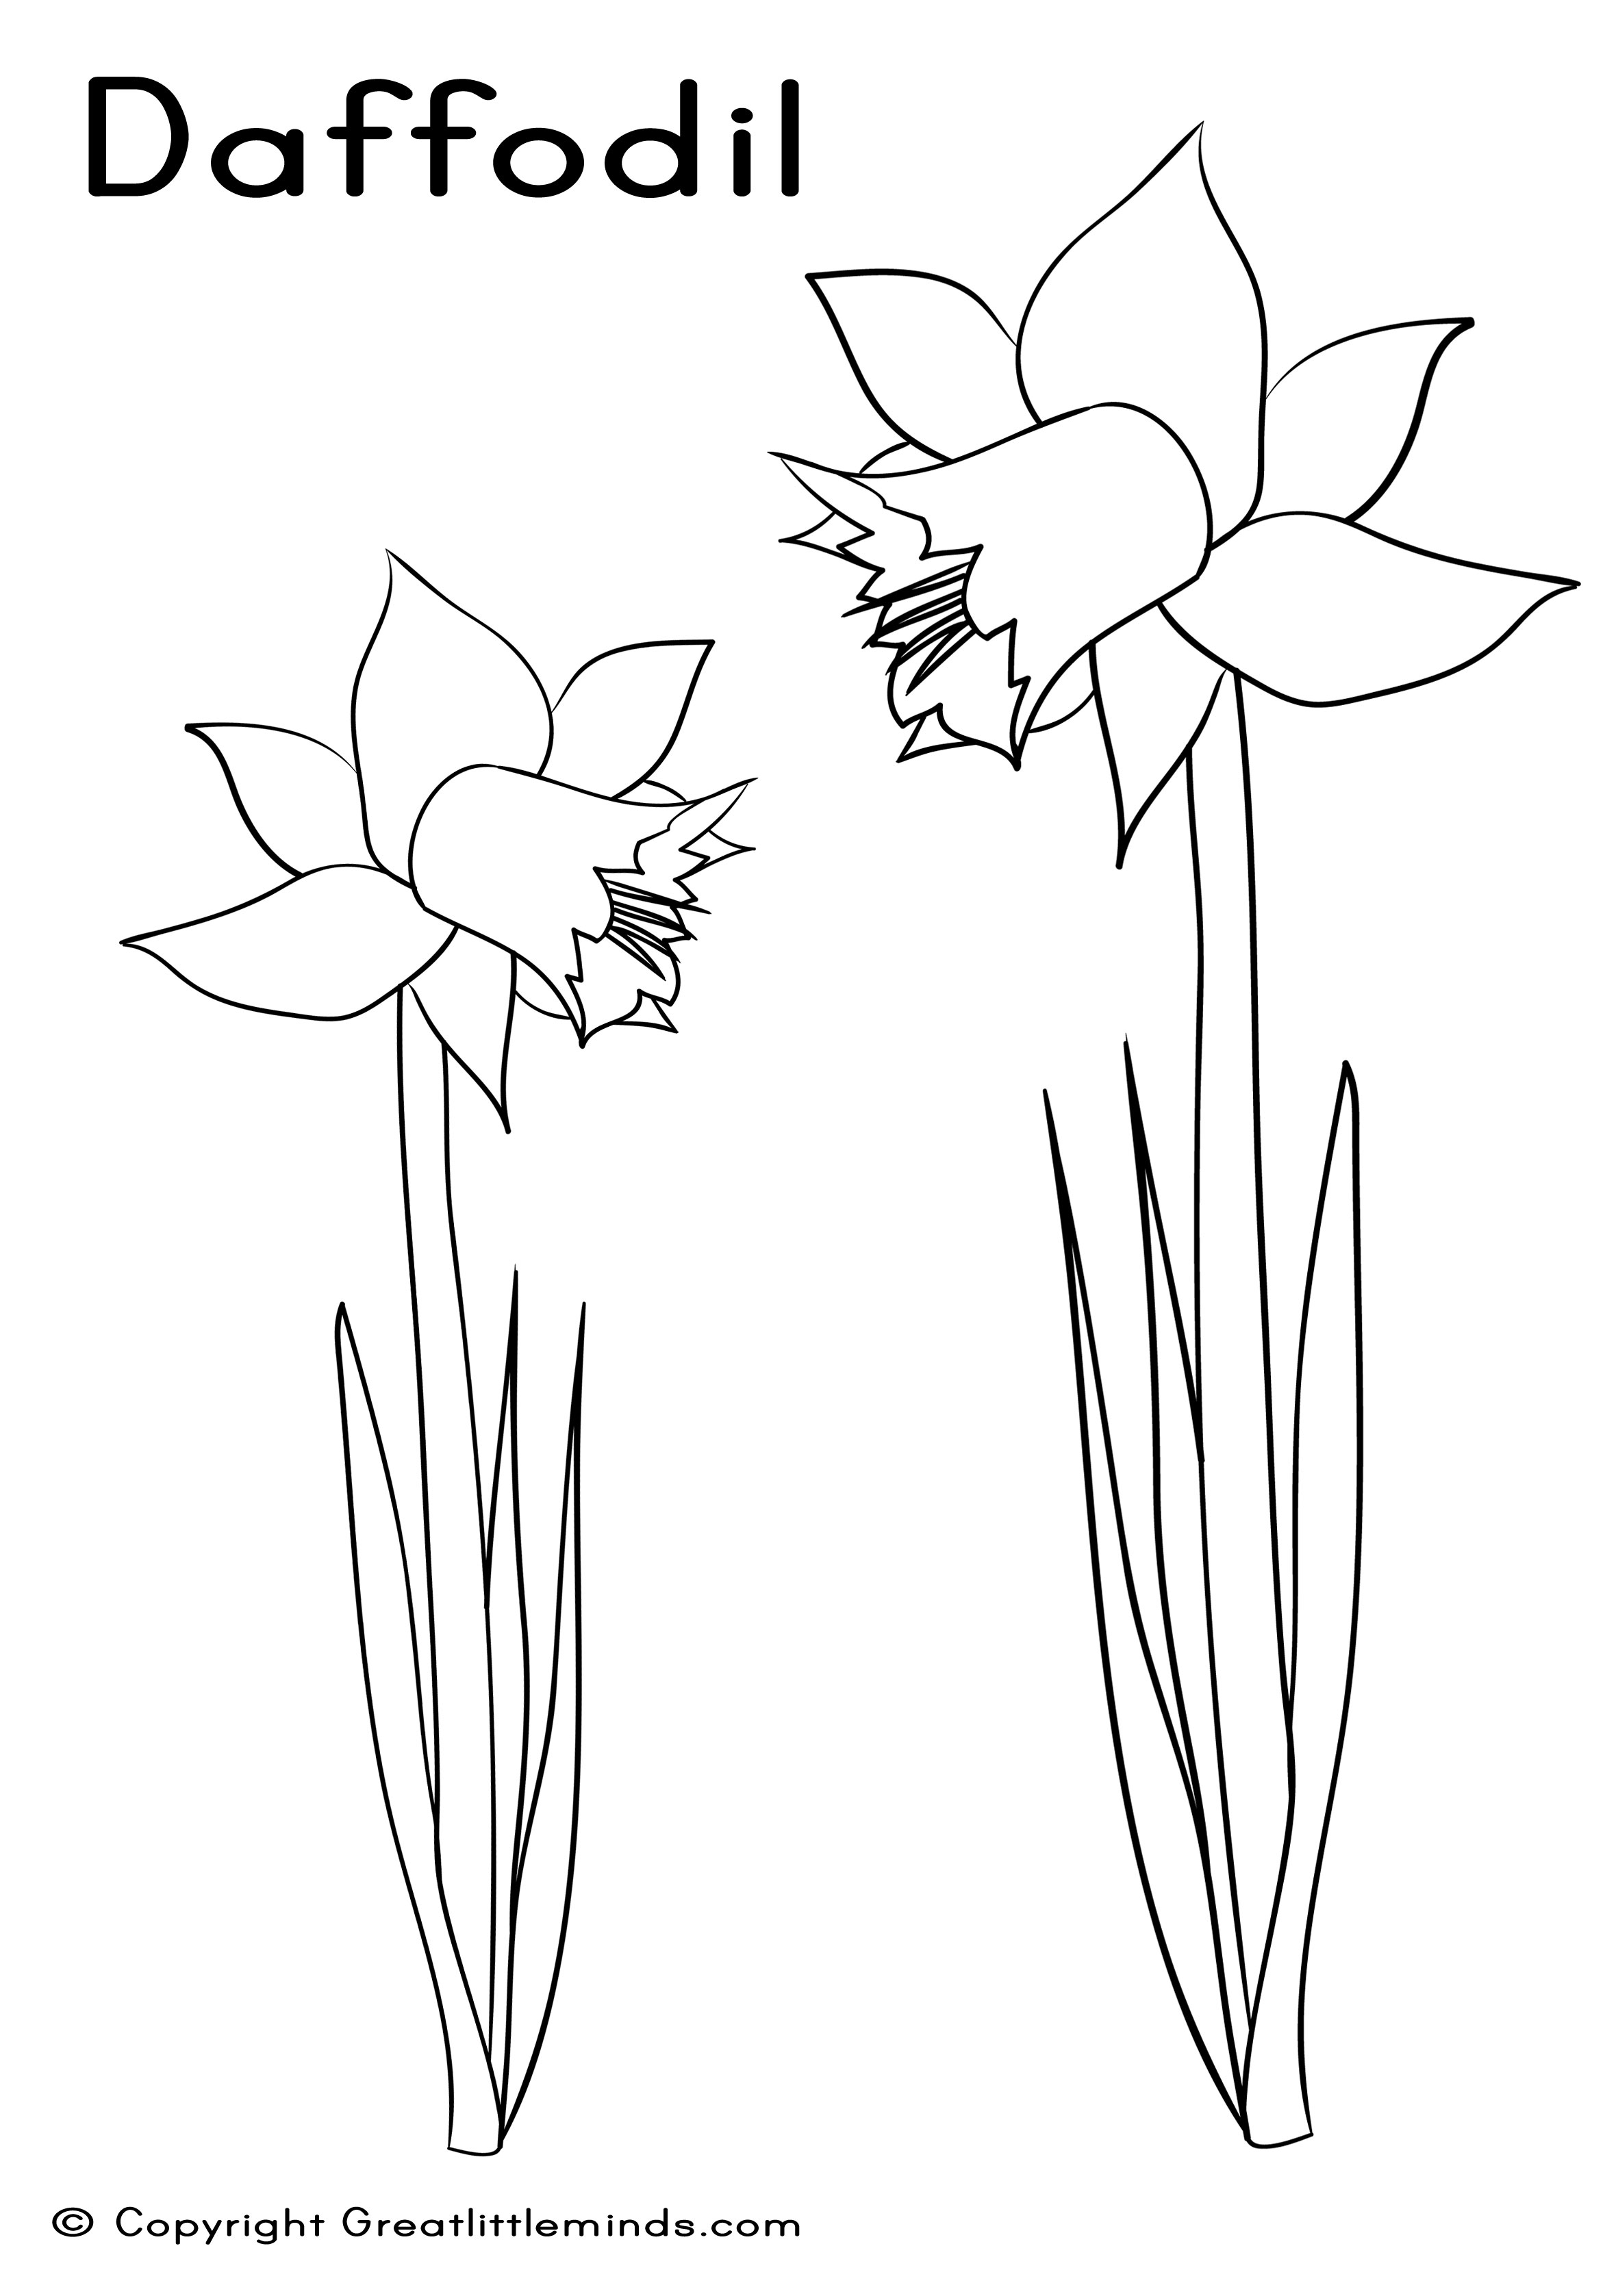 Daffodil Colouring Sheet Download Of New Daffodil Flower Coloring Pages Collection Printable